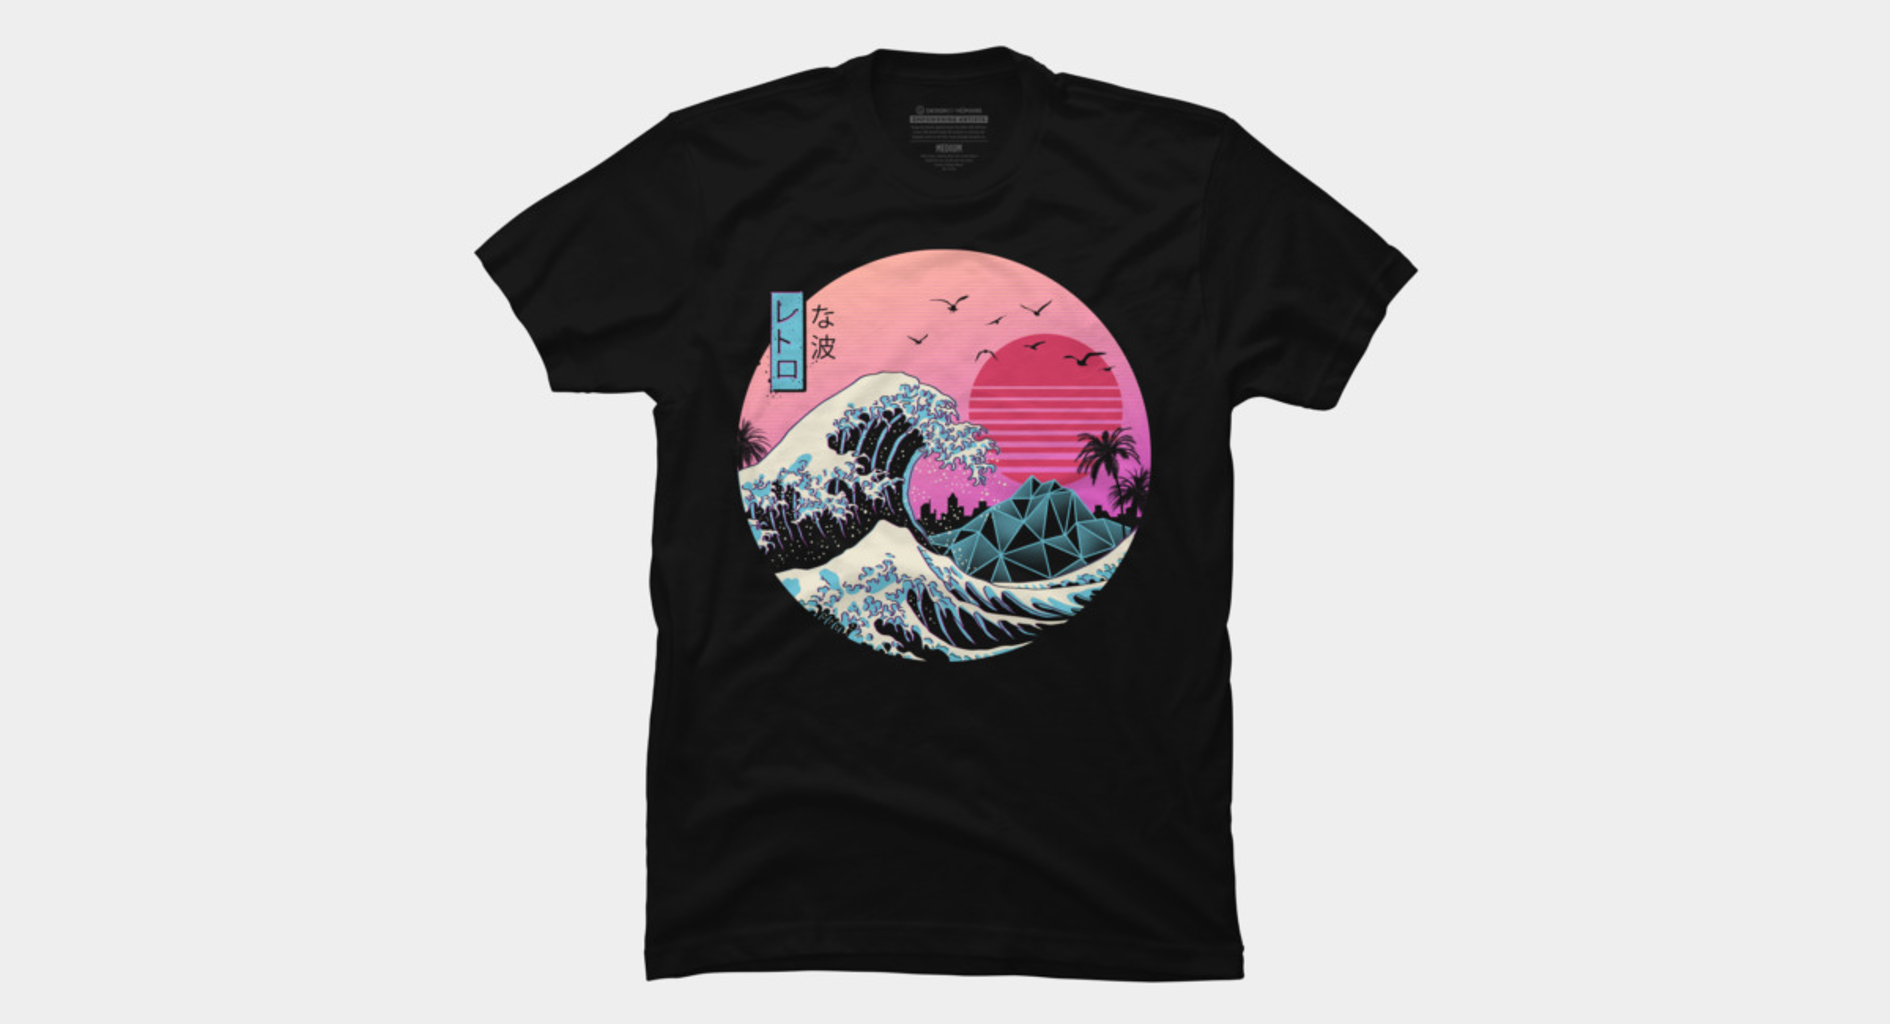 Design by Humans: The Great Retro Wave